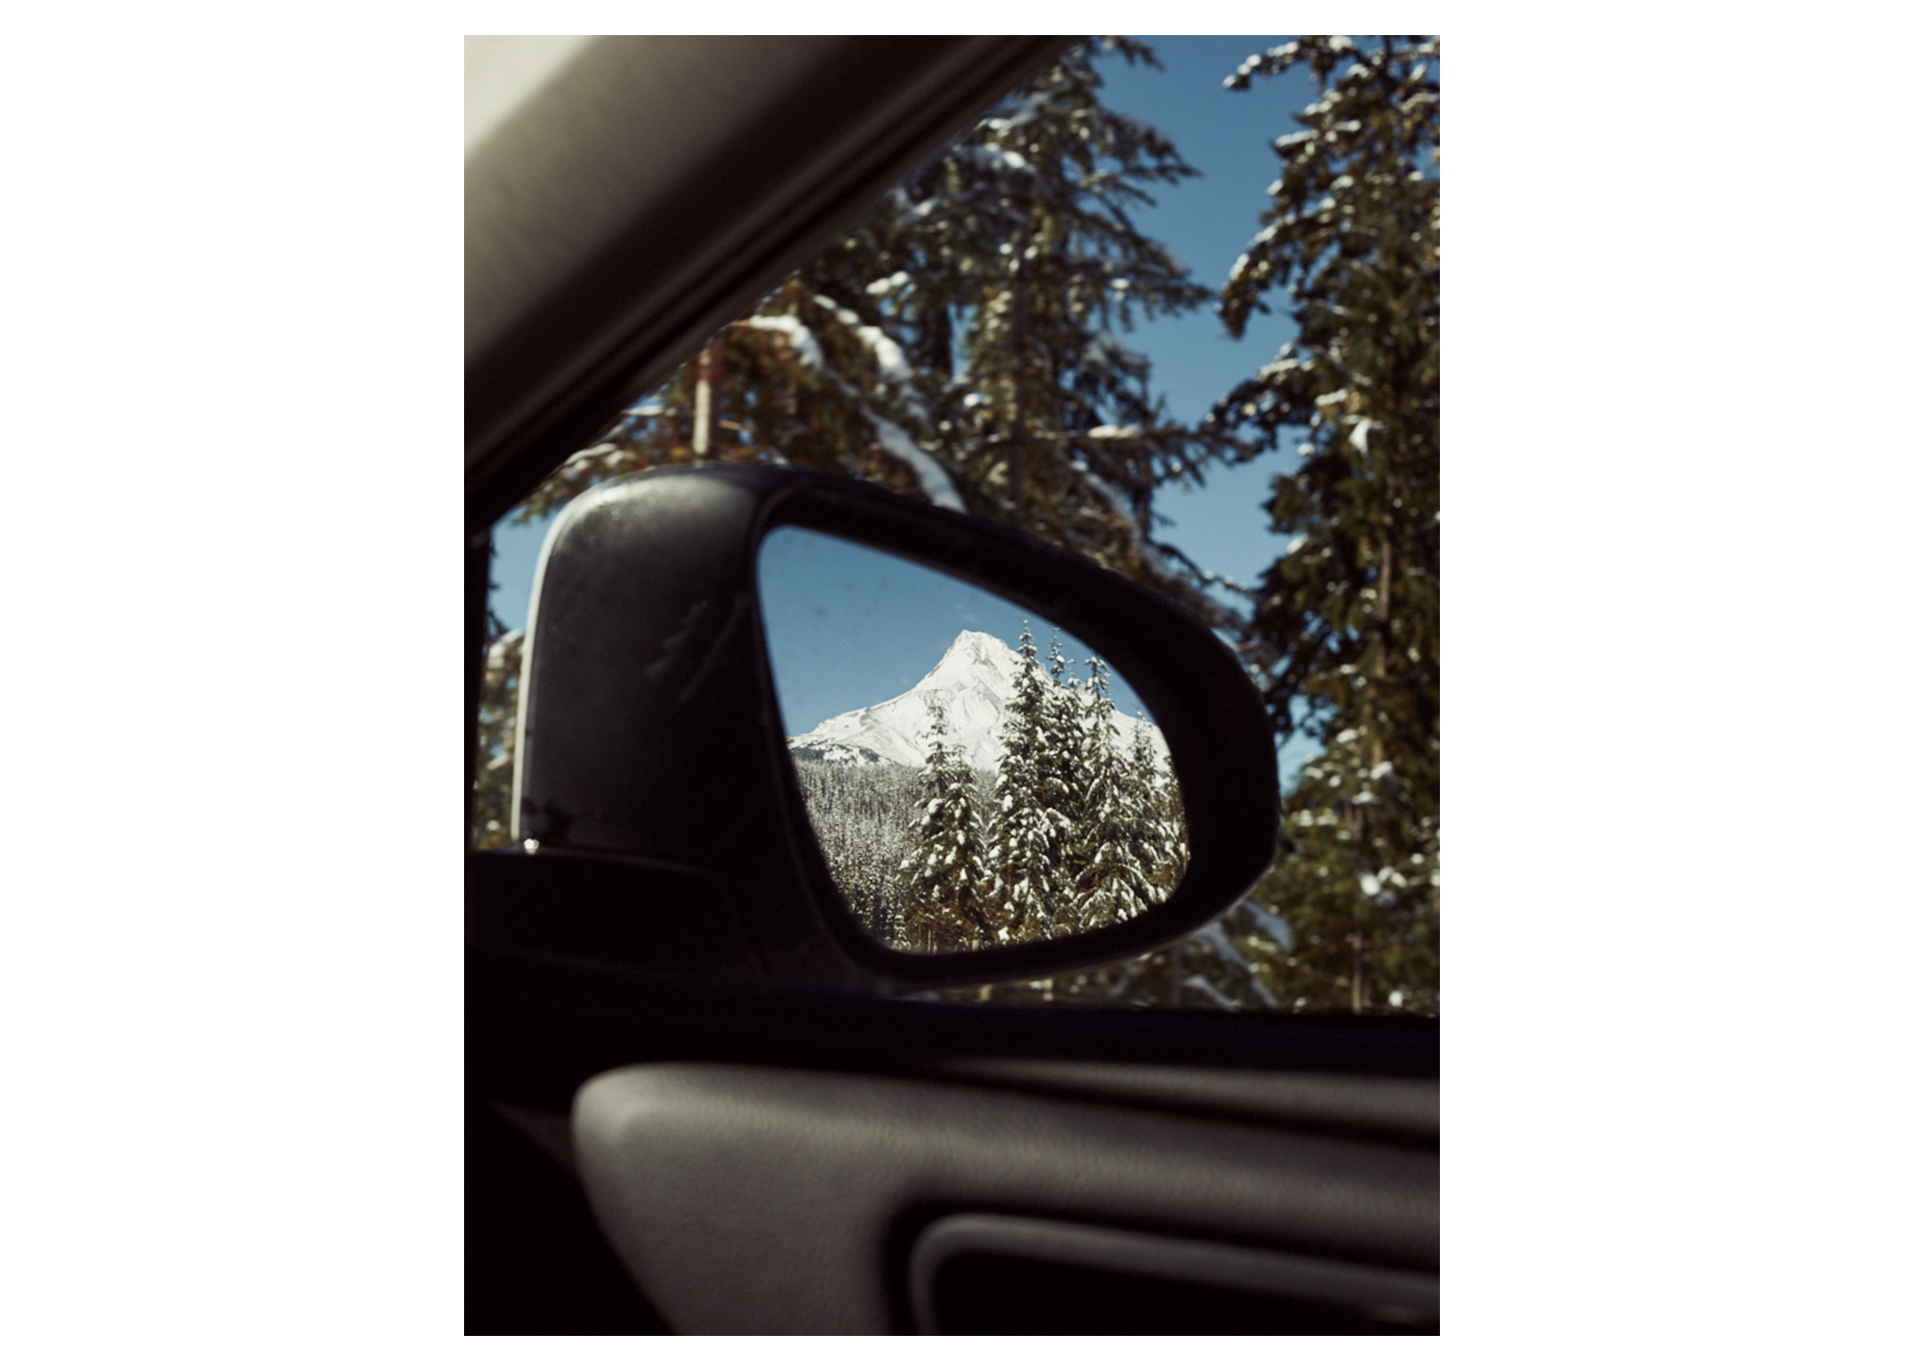 Mt. Hood, Oregon.  Brad Torchia is an LA-based editorial and commercial photographer.